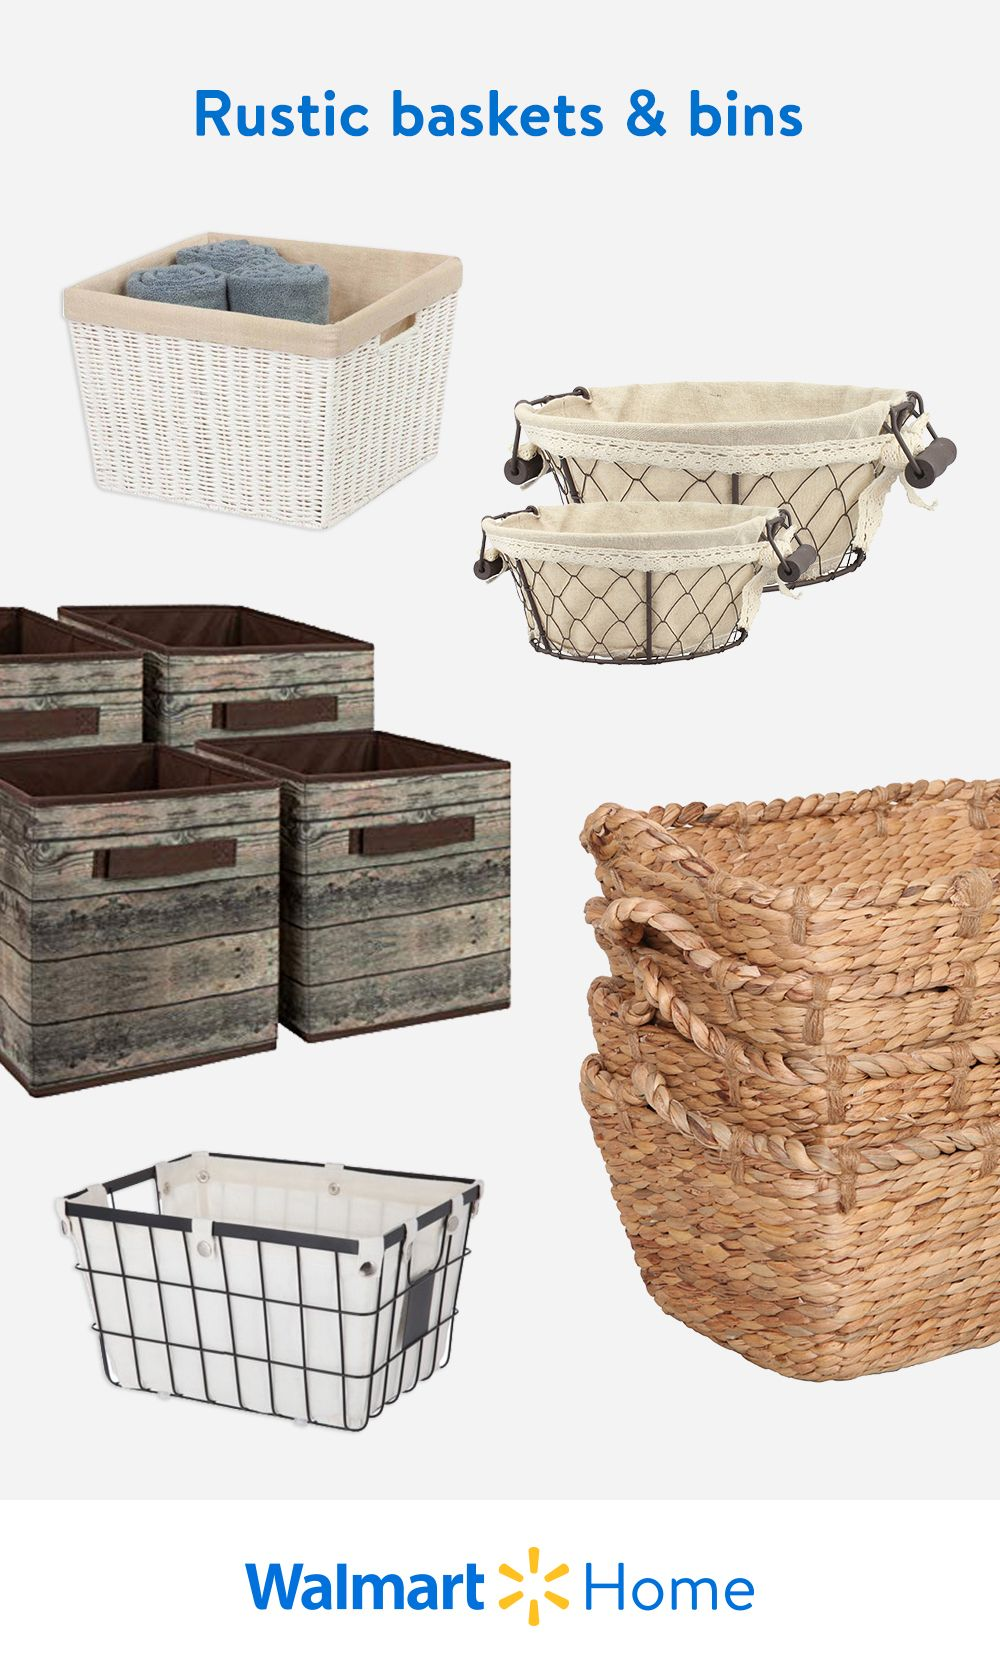 Maximize And Organize With Budget Friendly Stylish Storage From Walmart Store It All In Our Rustic Basket Amazon Home Decor Rustic Baskets Farm Kitchen Decor